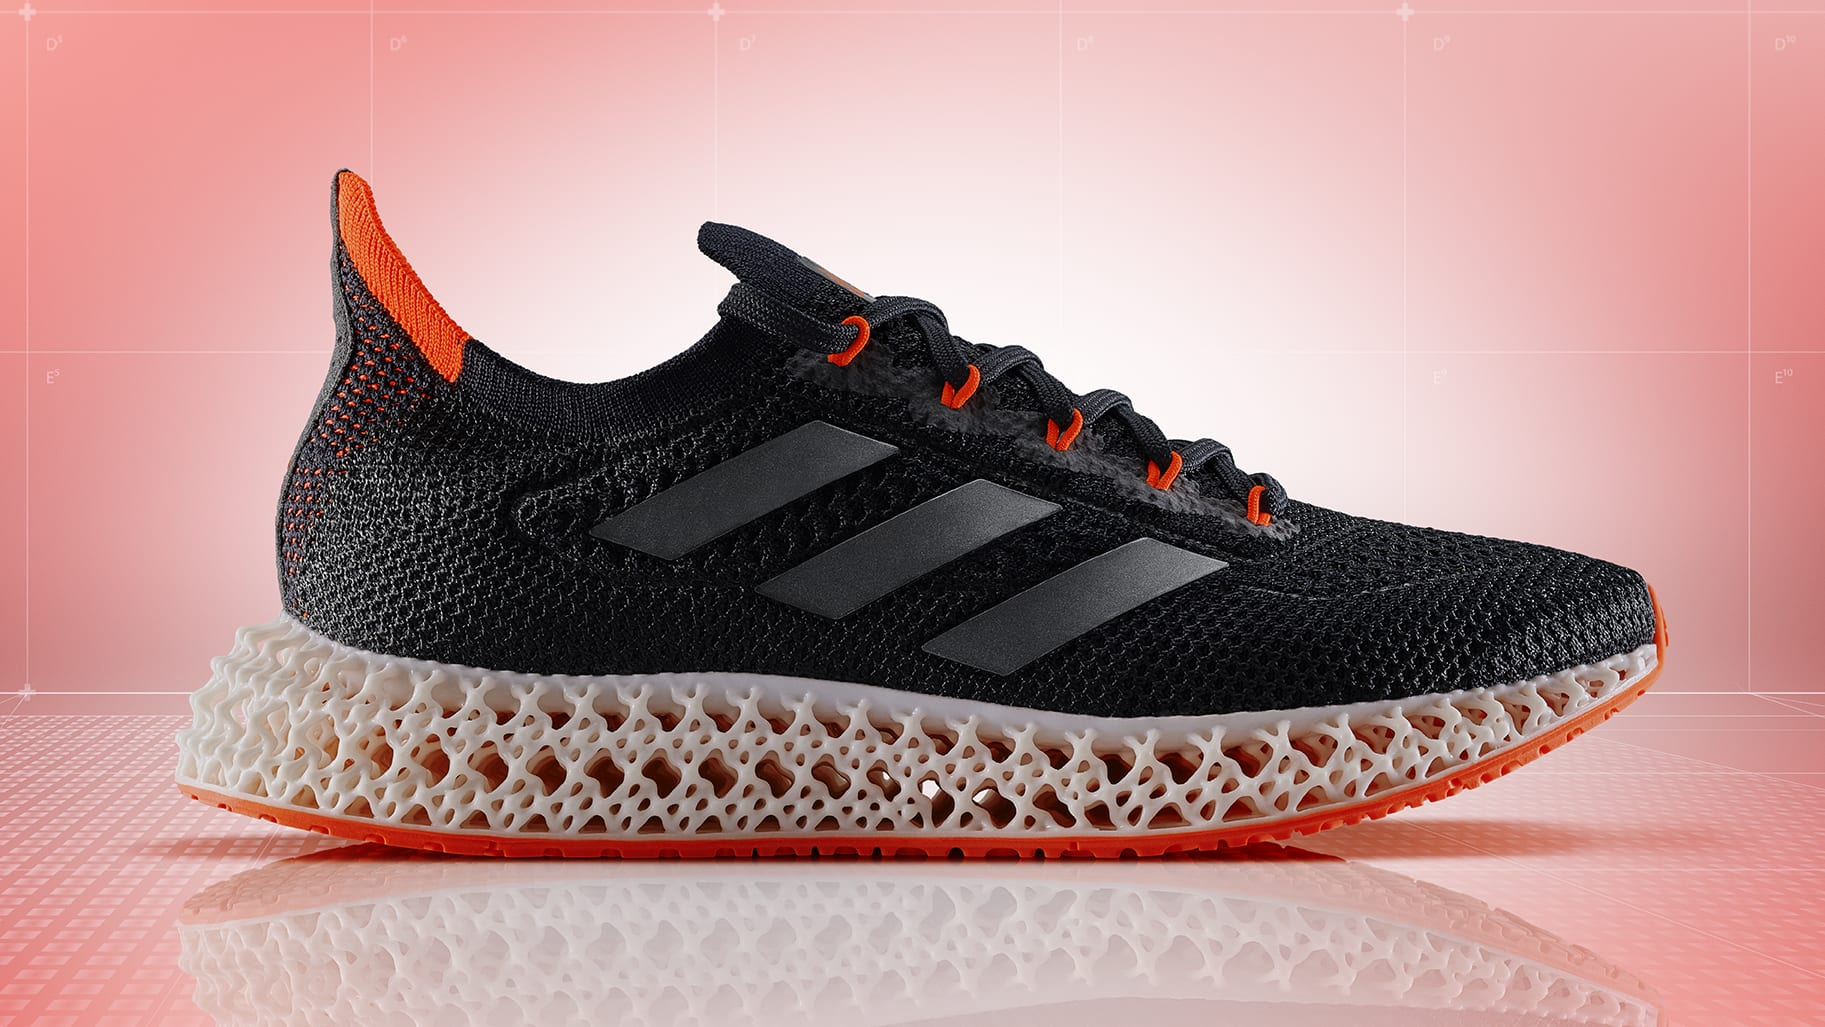 Adidas 4DFWD FY3963 Lateral